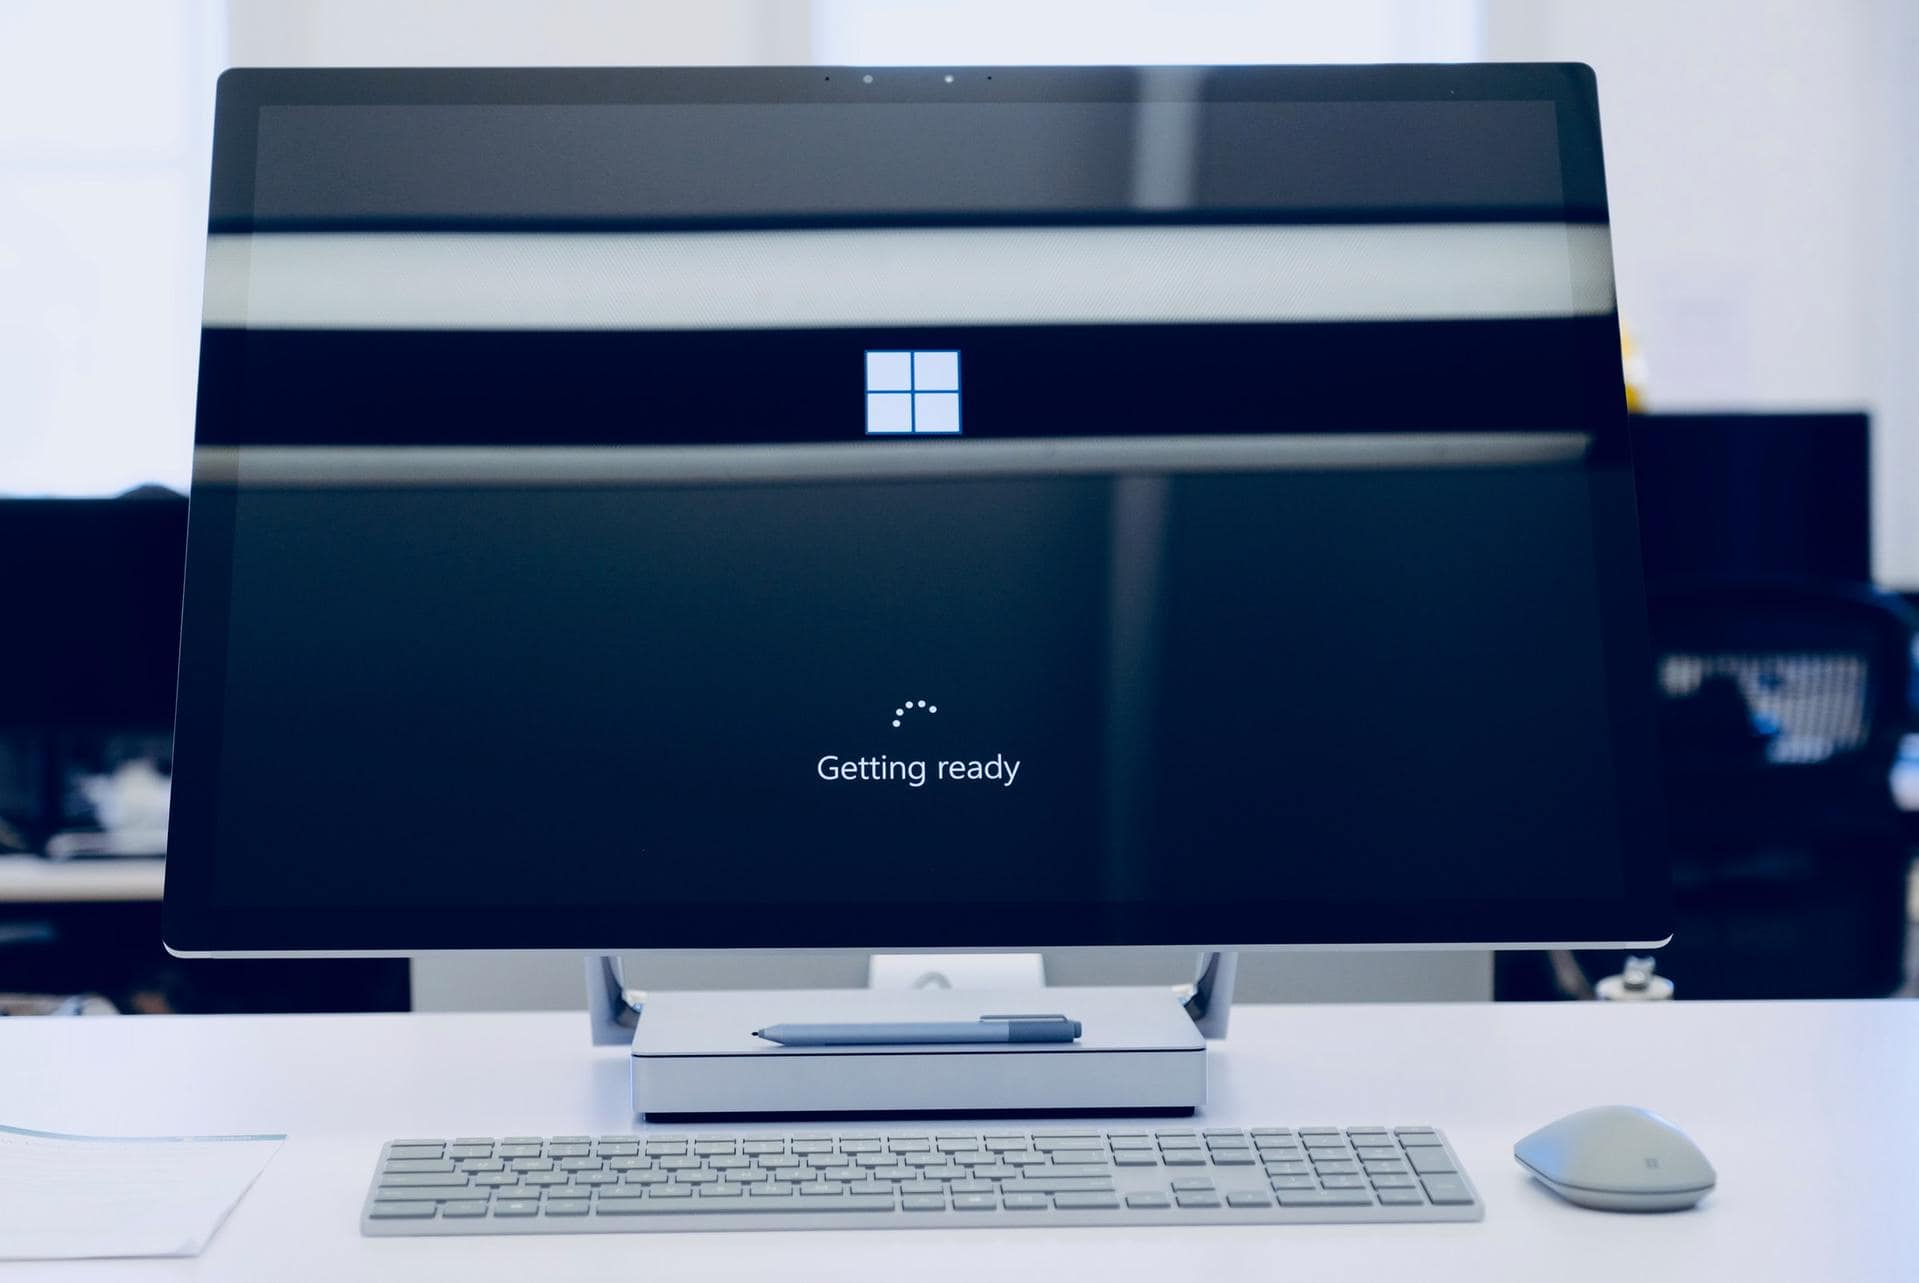 How to Temporarily Stop Windows PC from sleeping?